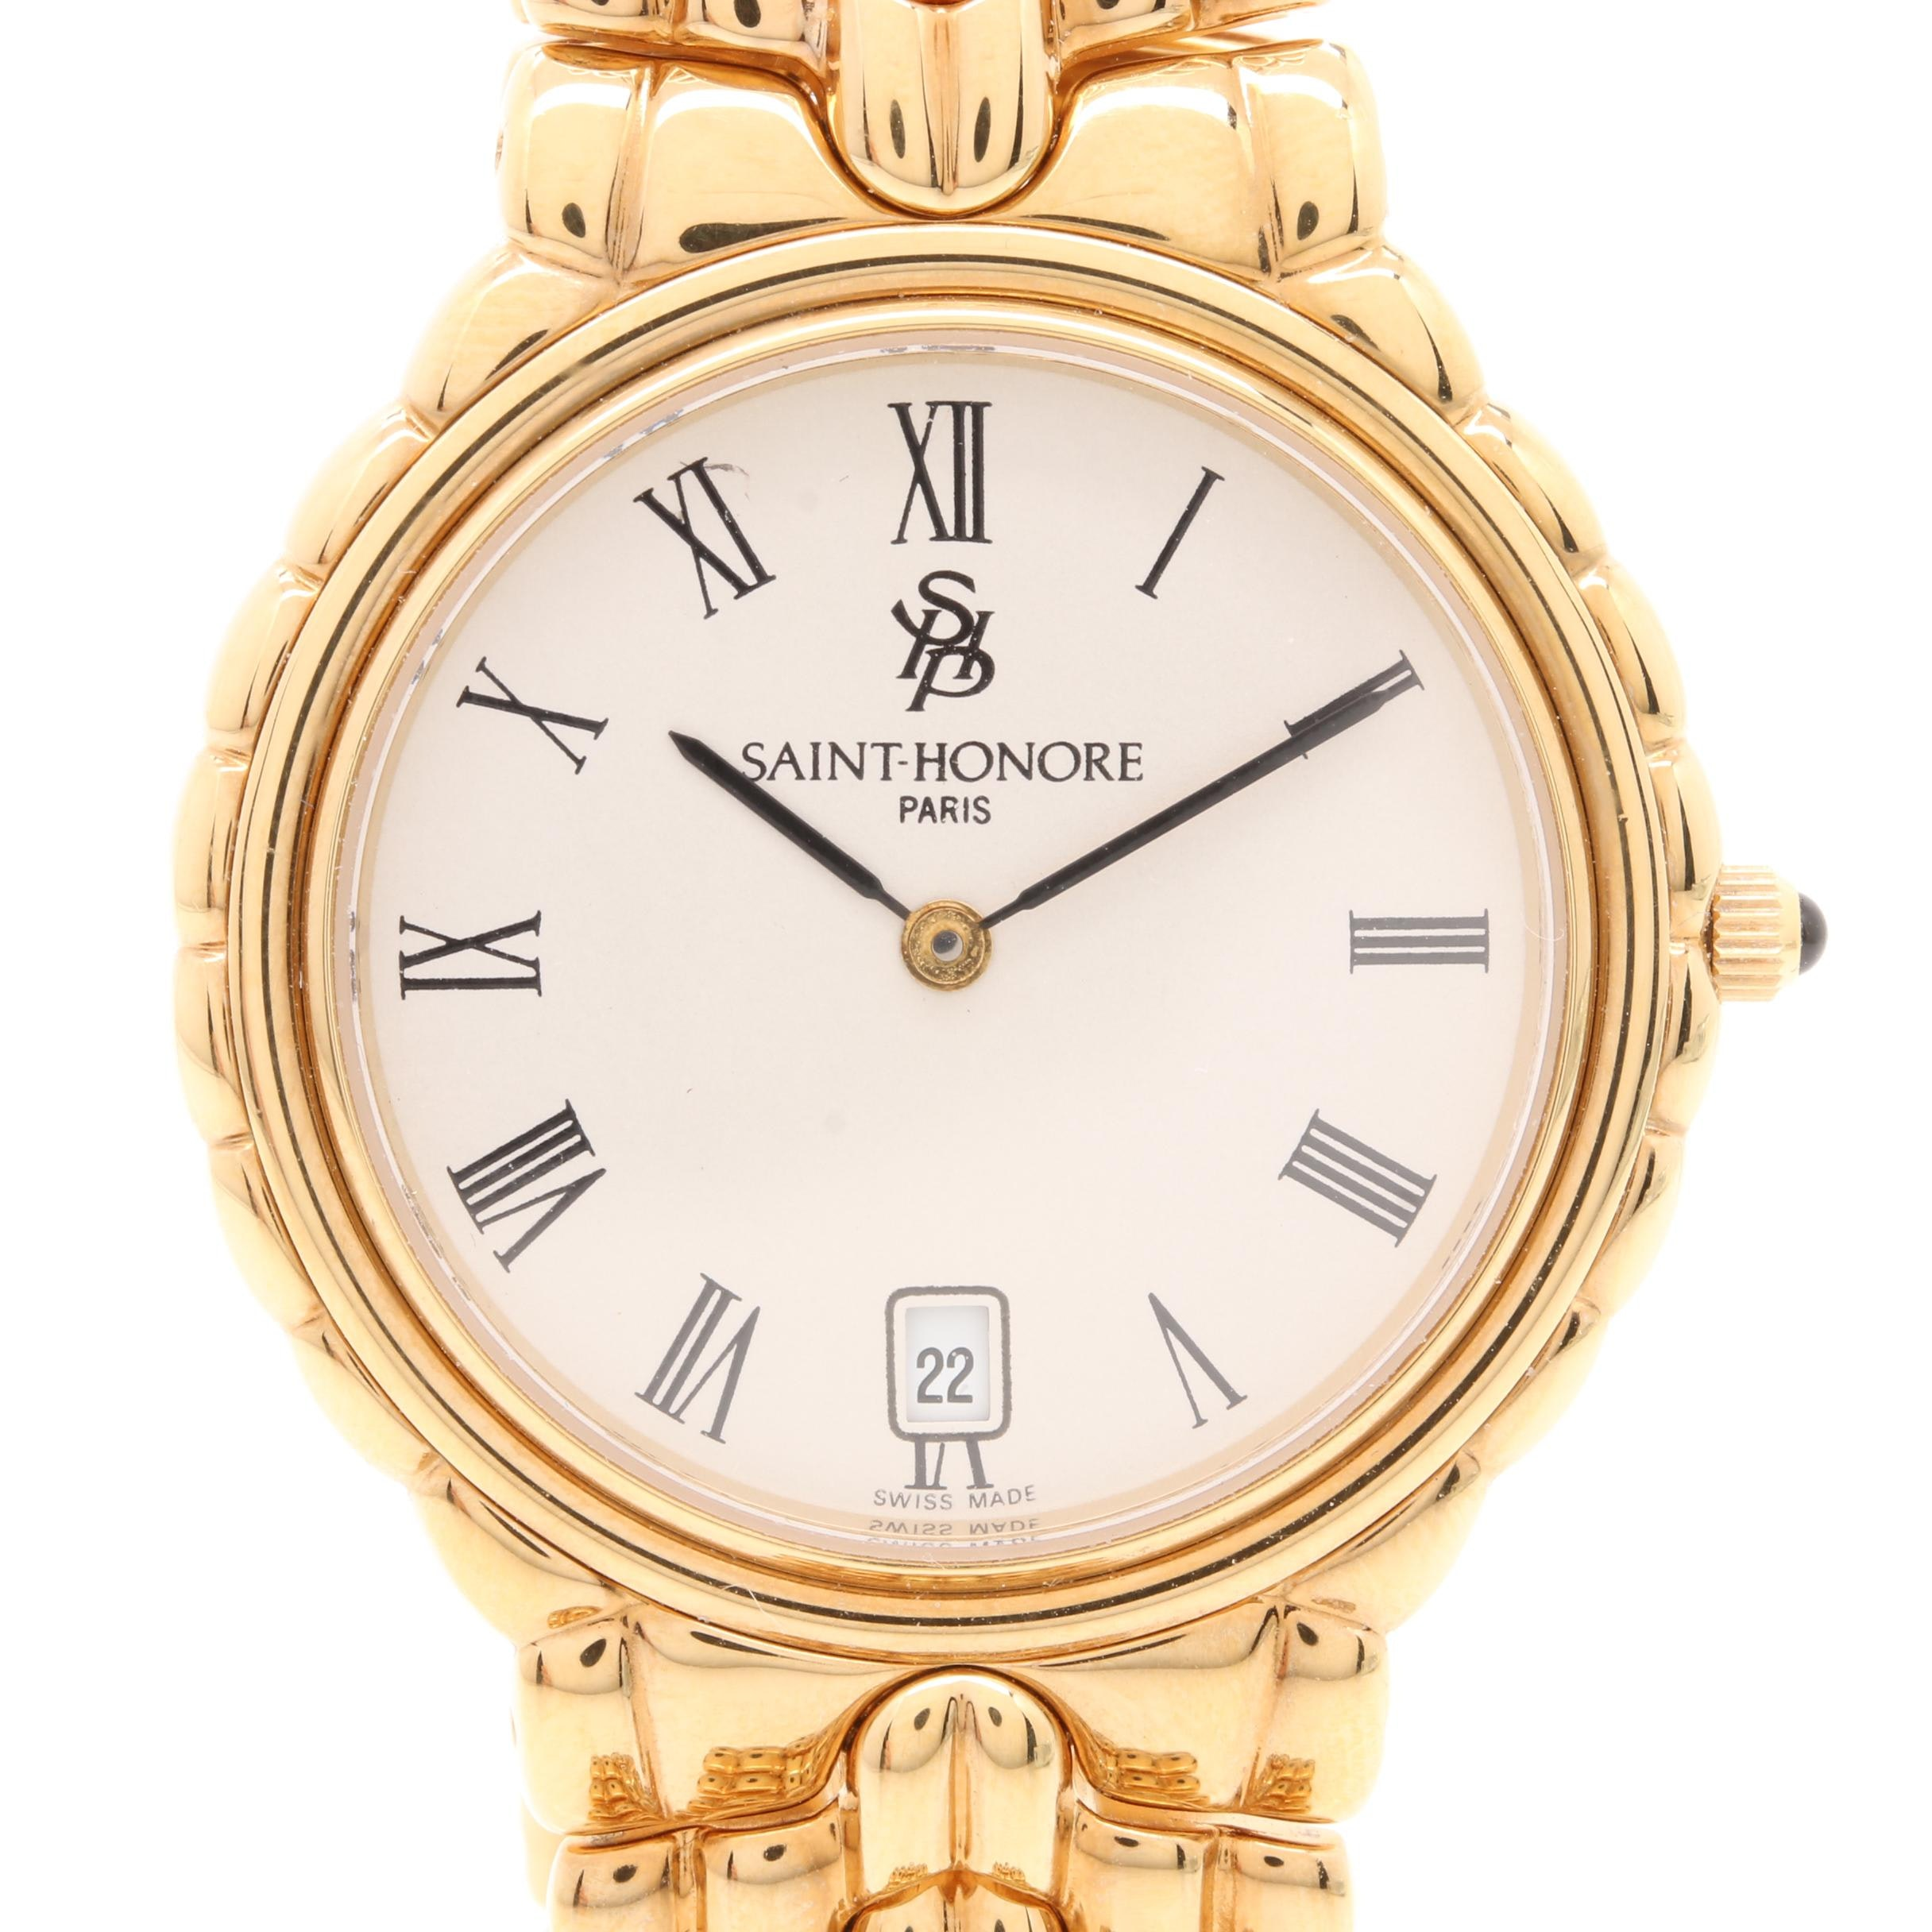 Saint-Honore Gold Tone Dress Wristwatch with Box